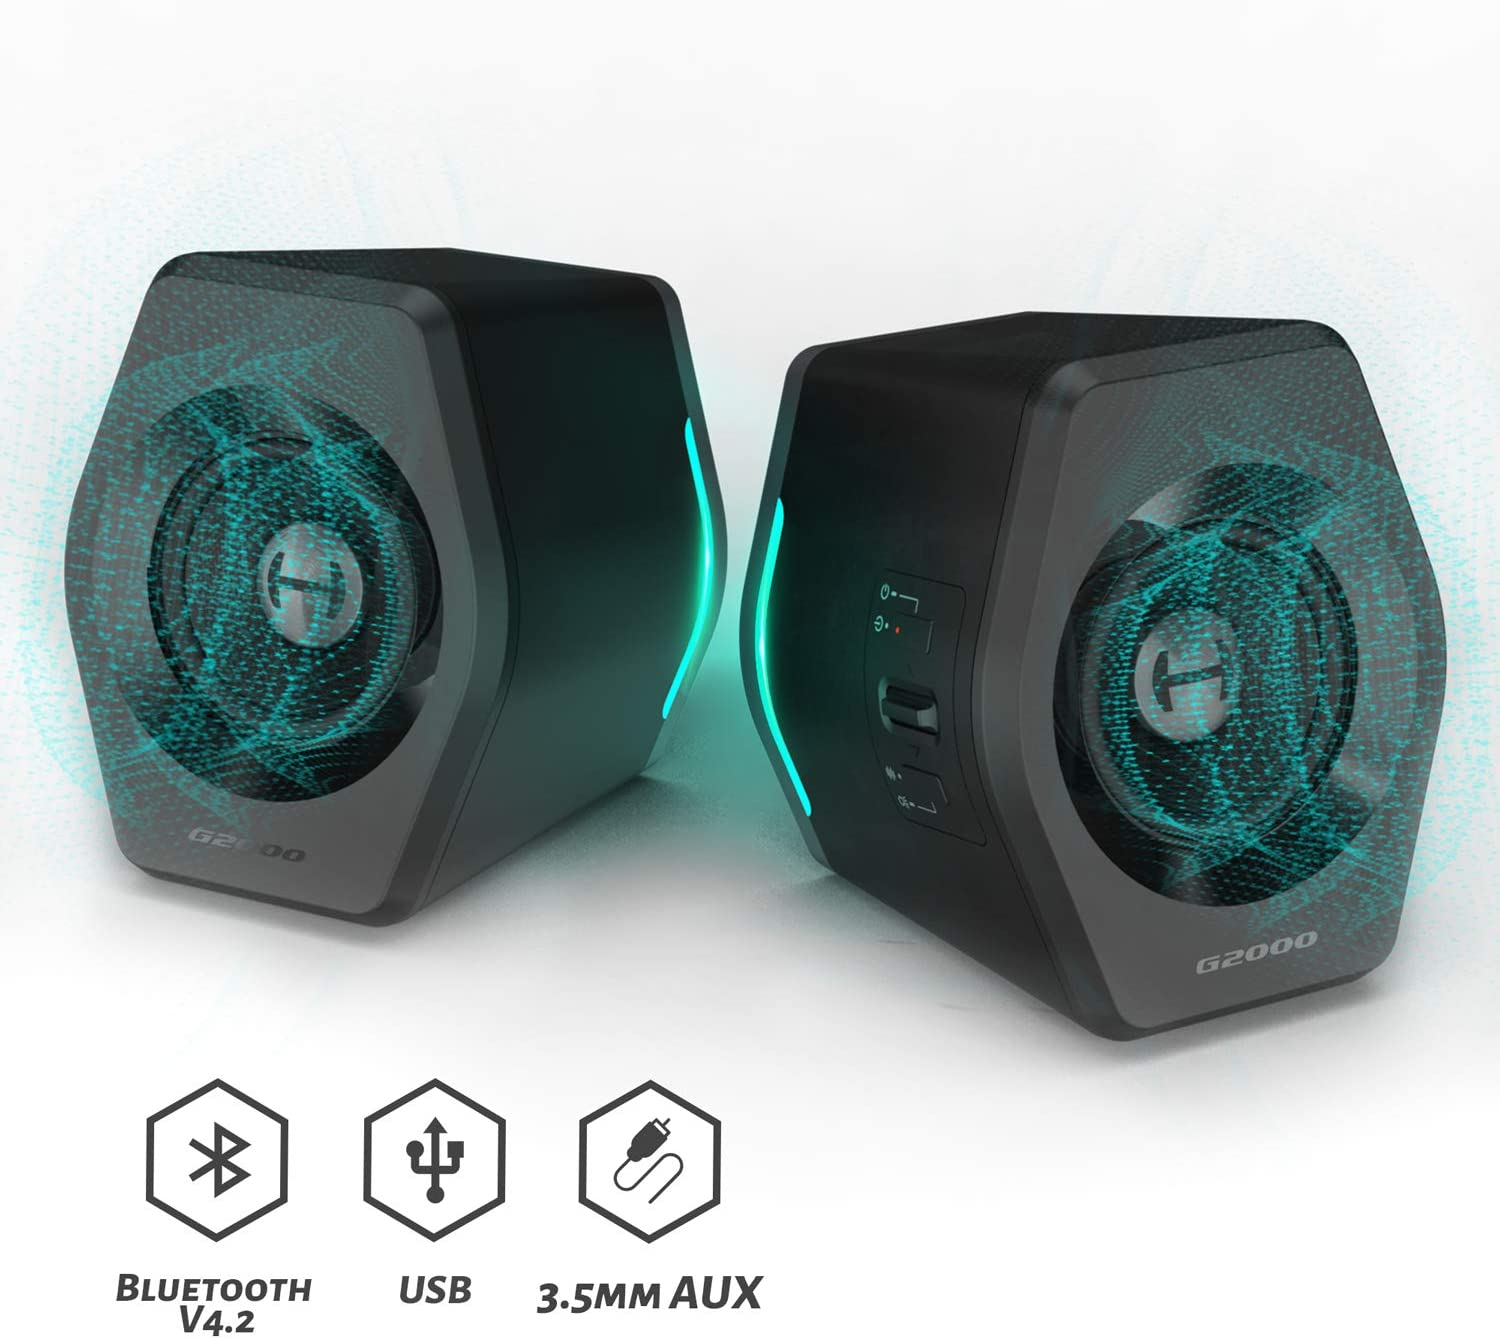 Edifier G2000 Gaming Speakers for Desktop, PC, Laptop, Mac, Computer Woofer Speakers Bluetooth, Bass Multimedia Speakers USB with subwoofer, RGB Lights, 3.5mm AUX inputs,Black